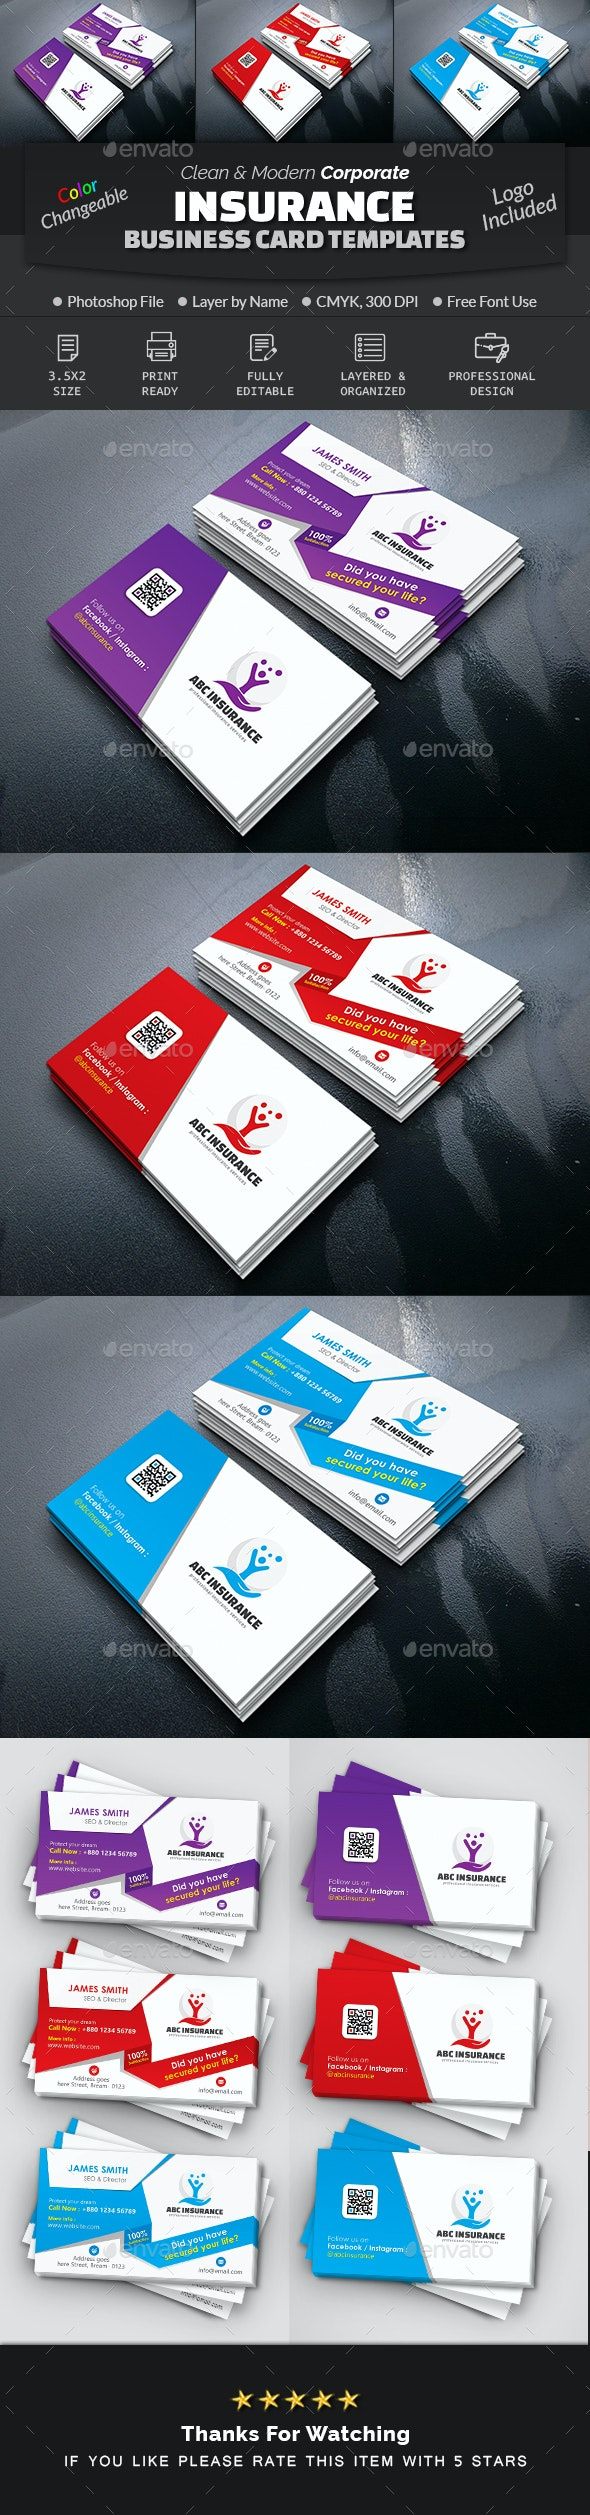 Corporate Insurance Business Card - Corporate Business Cards